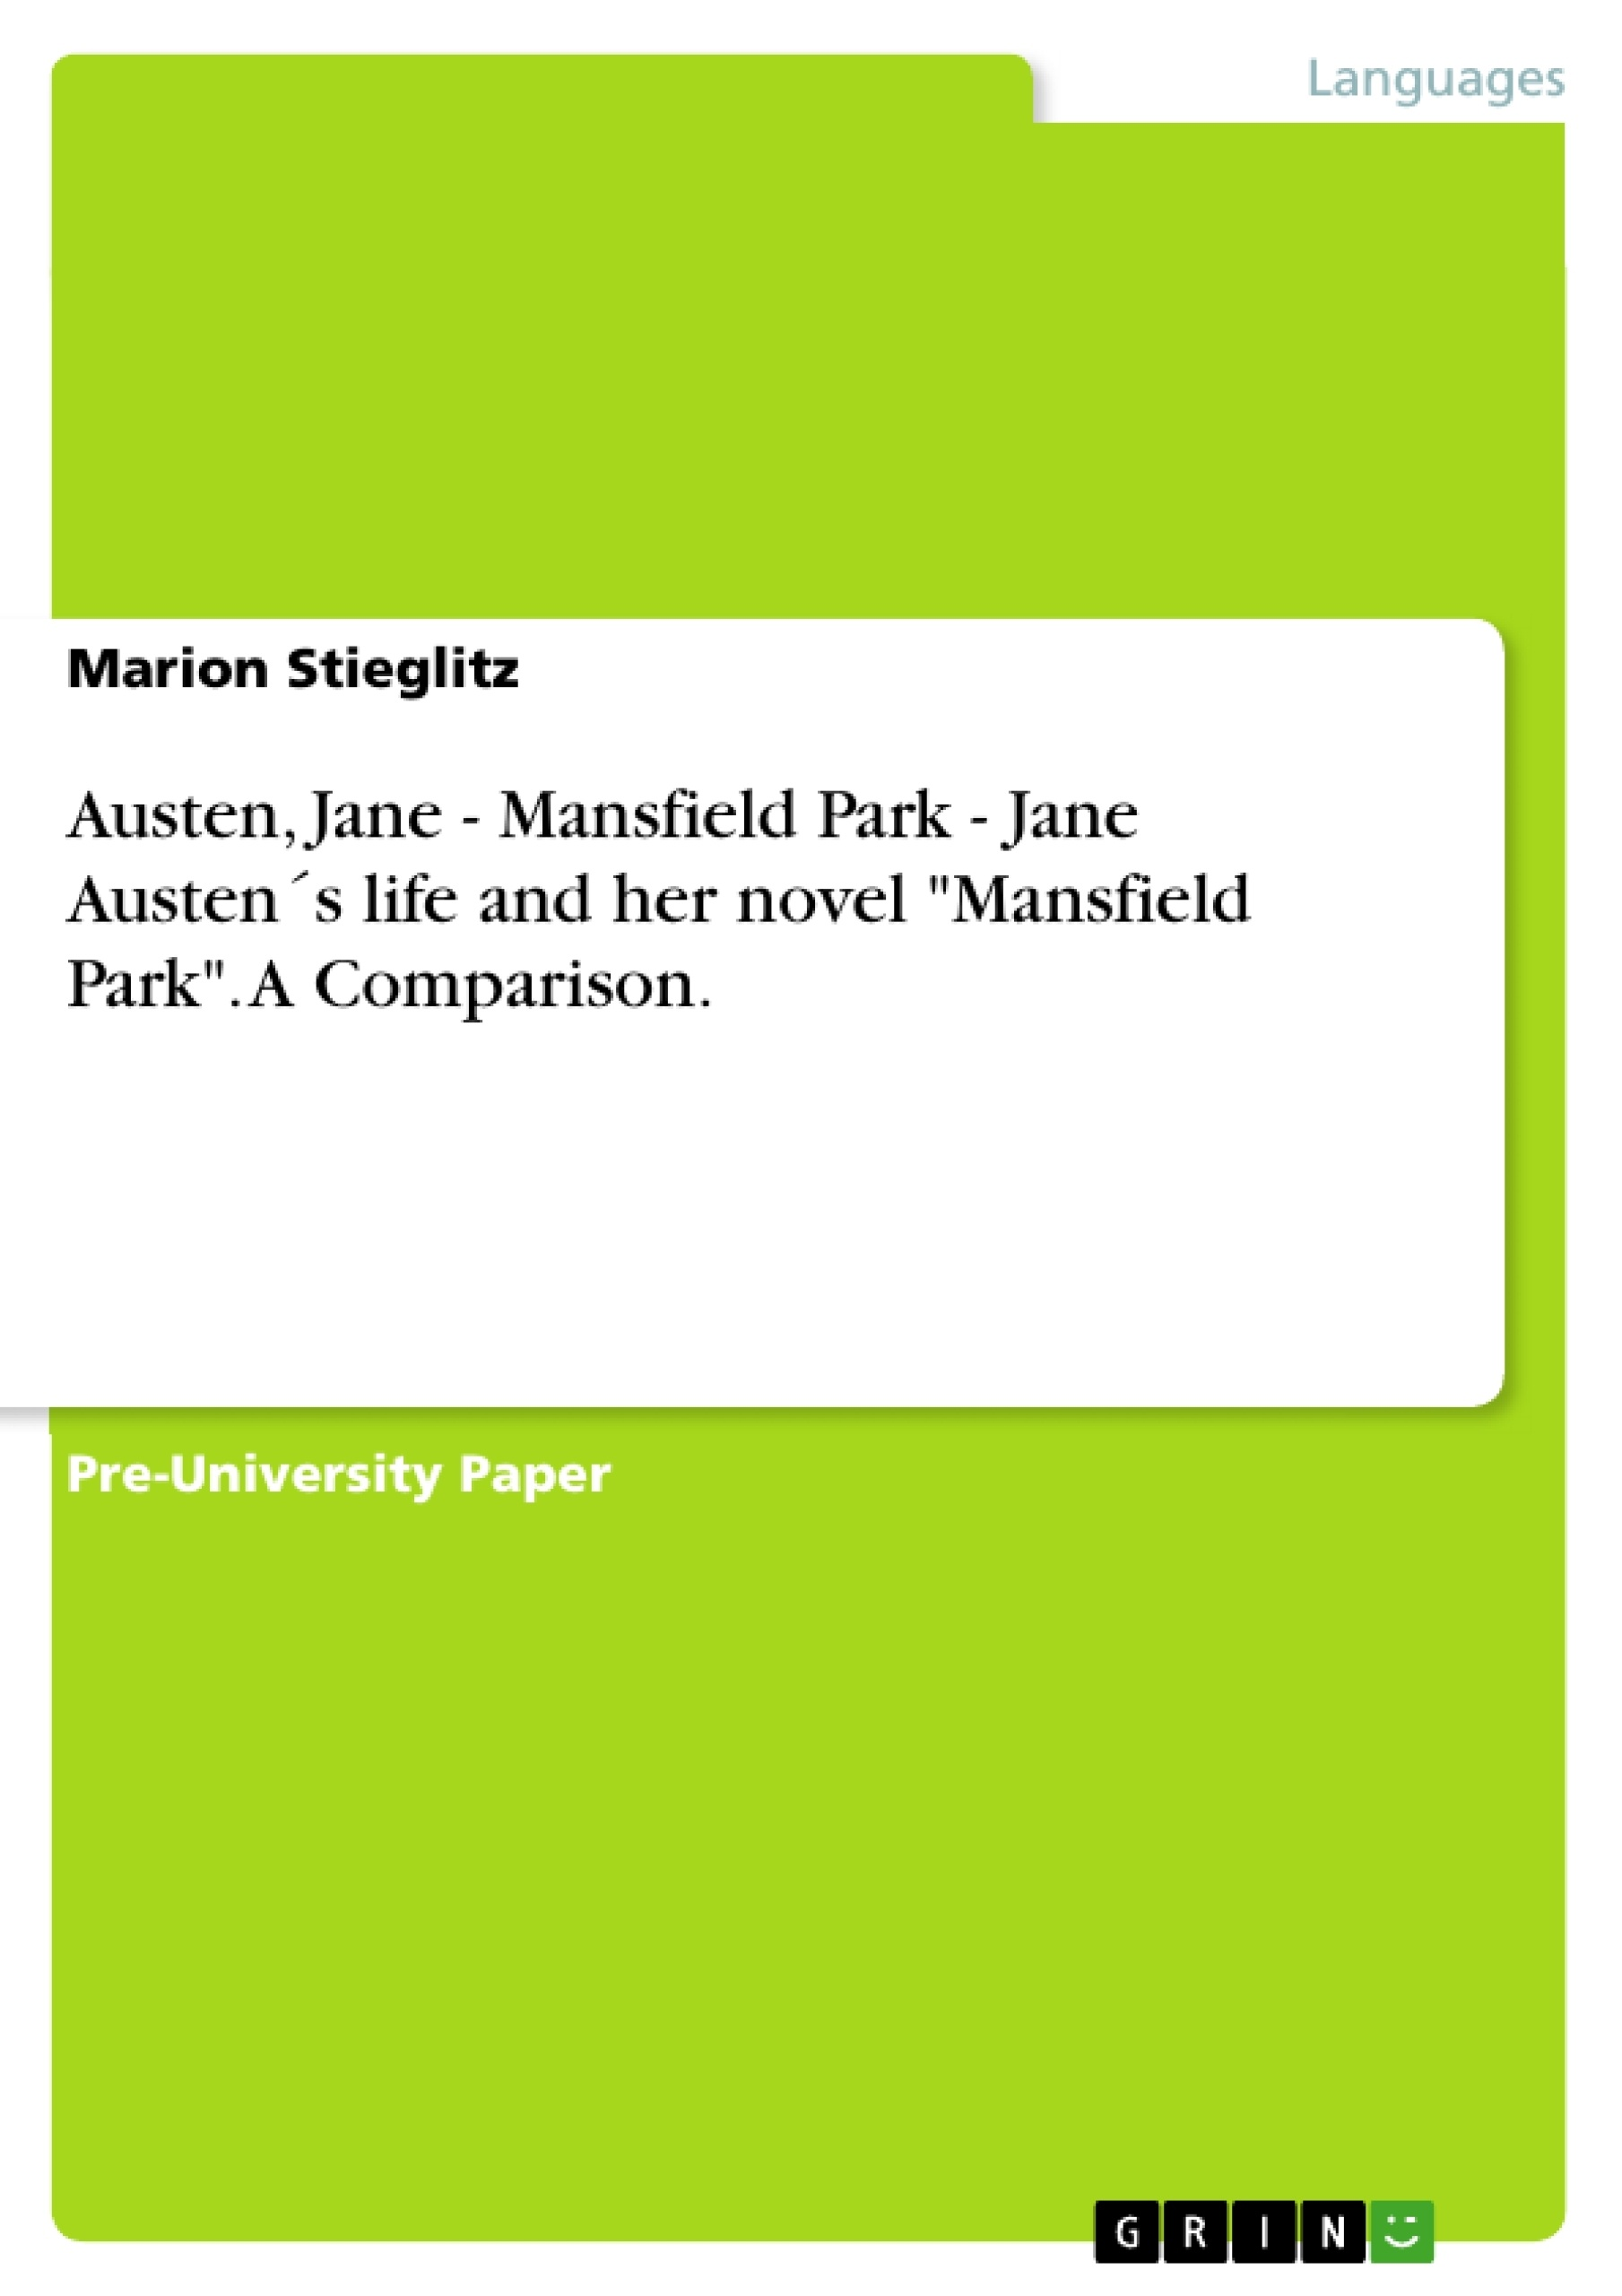 mansfeild park by jane austen essay Mansfield park mansfield park is considered to be a 'sober novel' it was published in three volumes by then austen had matured as a (1814) writer and was dealing.